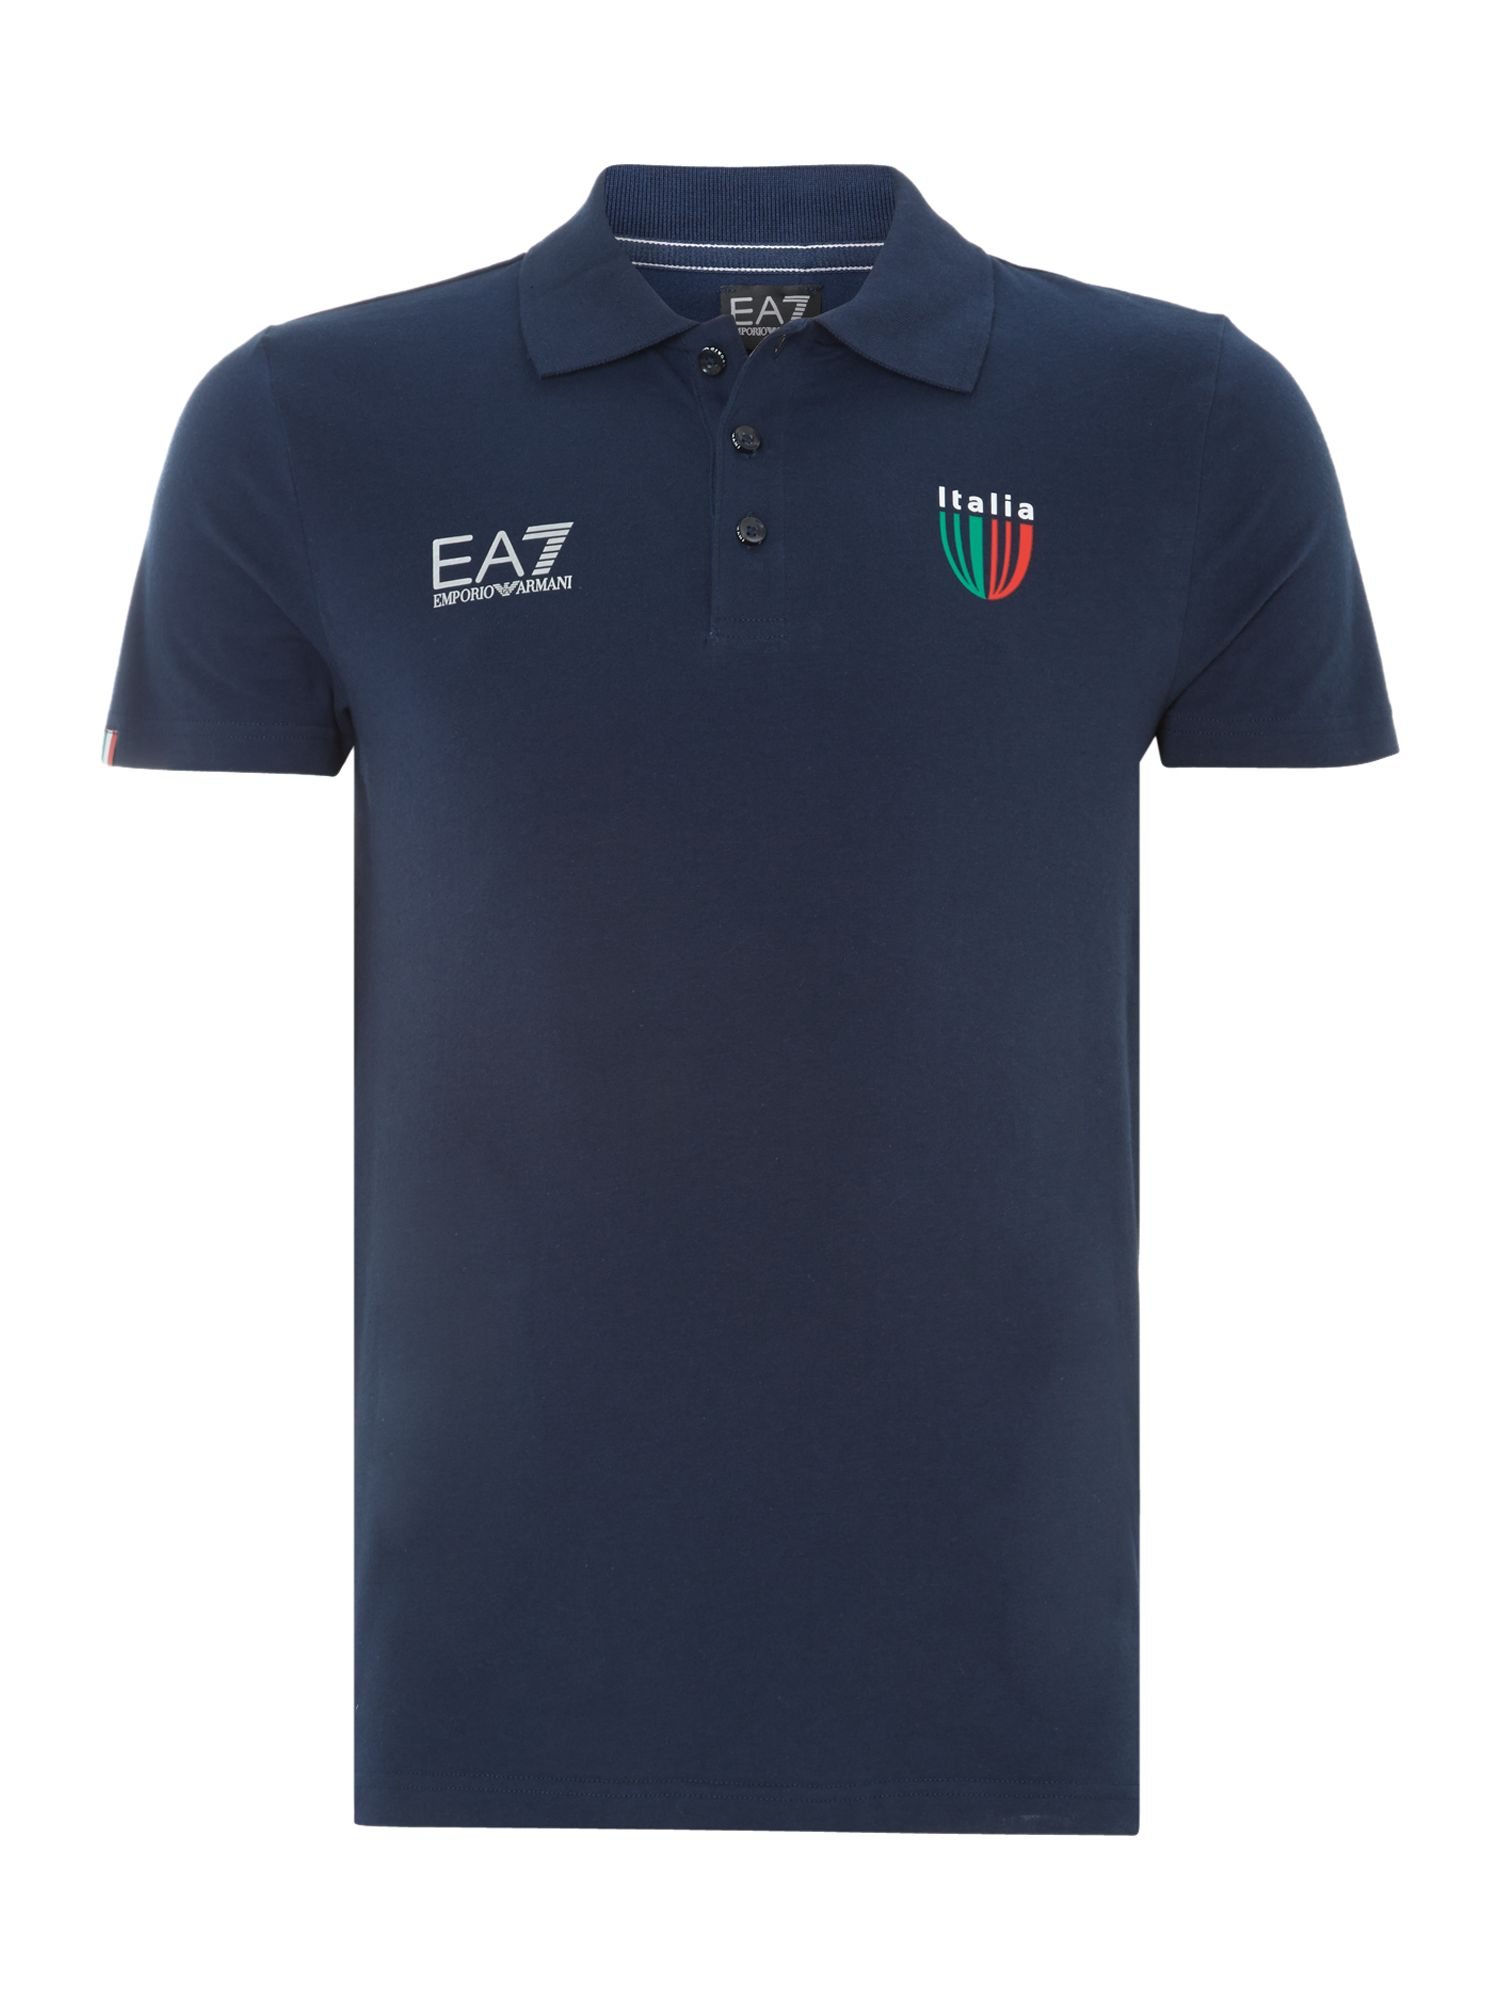 Short sleeve Soch italia team polo